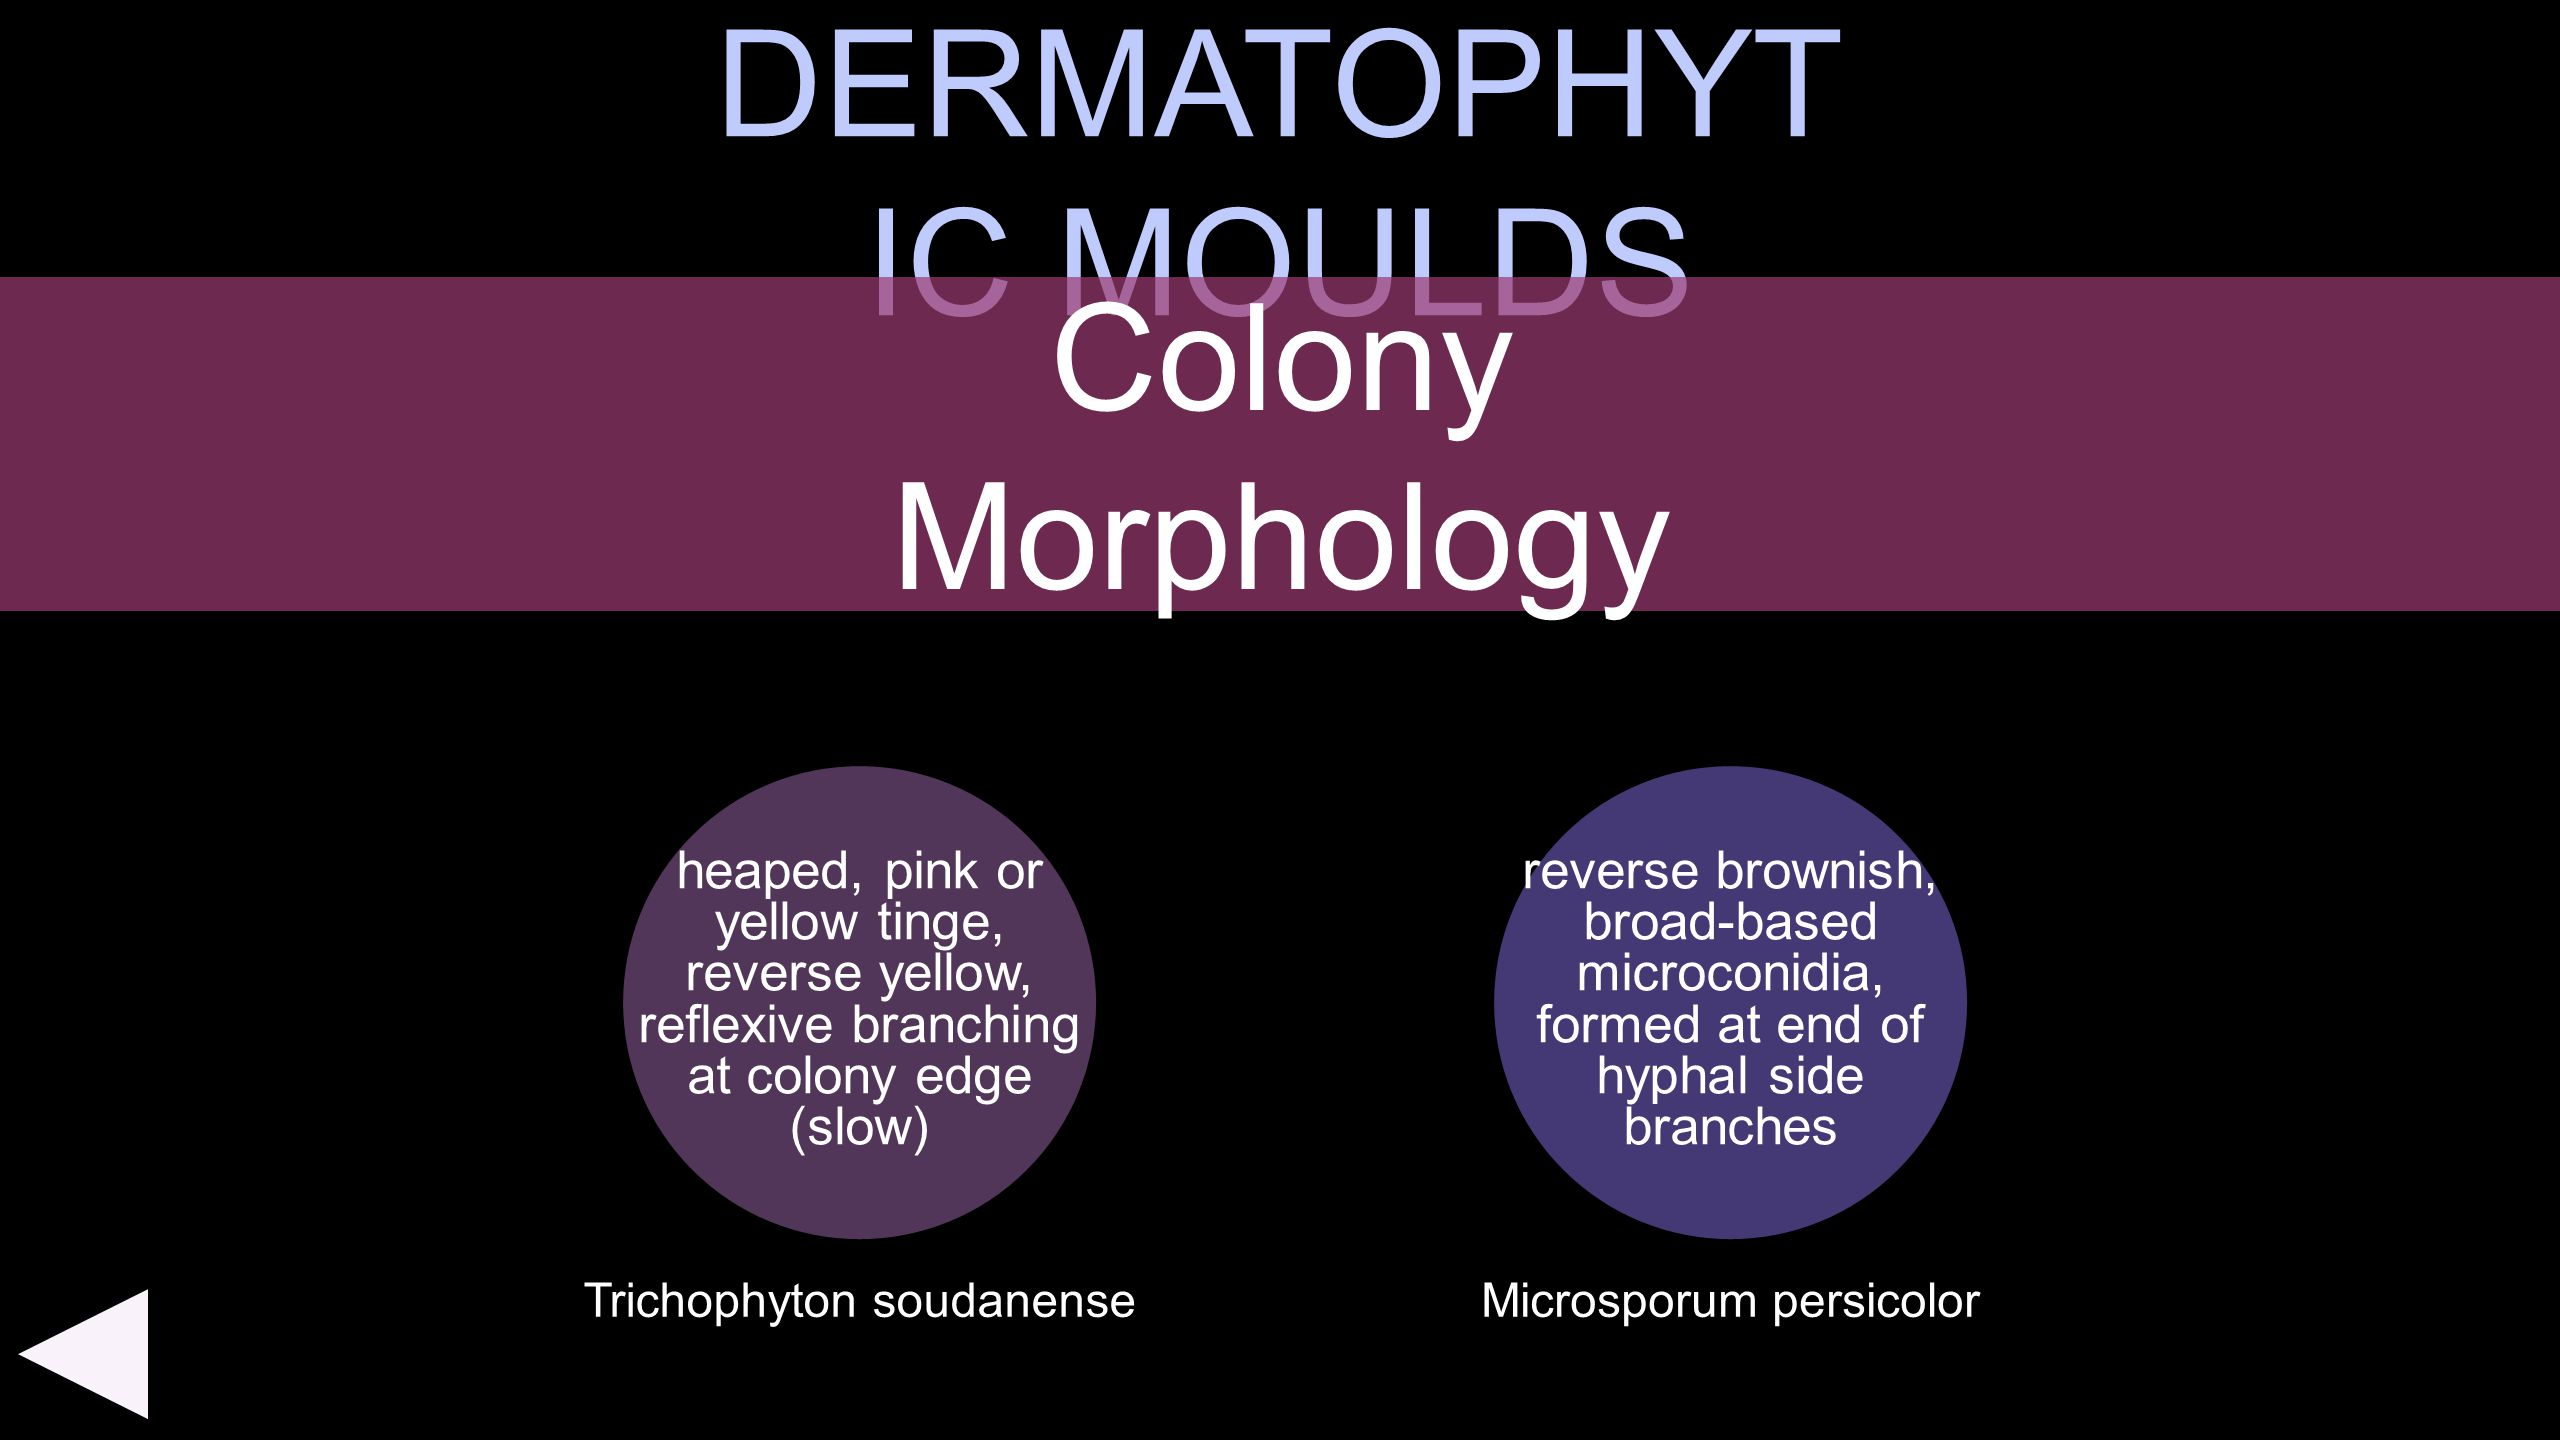 DERMATOPHYTIC MOULDS Colony Morphology